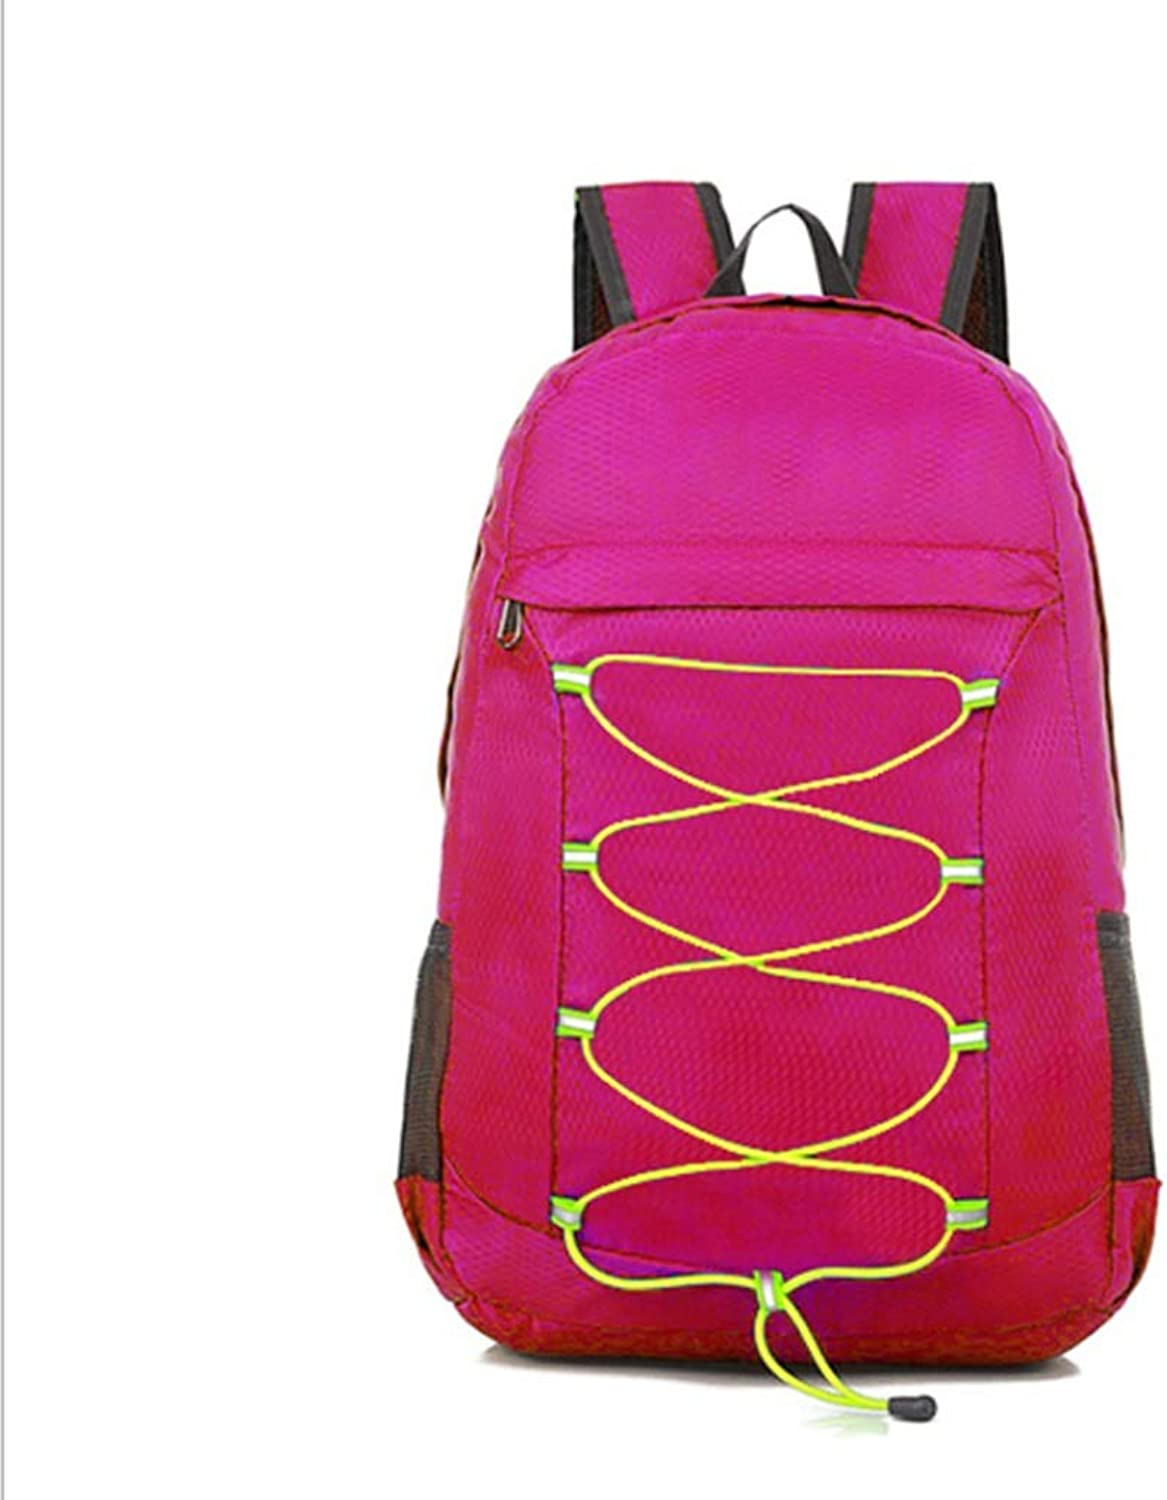 Outdoor Travel Hiking Backpack, Outfit Leisure Travel Folding Bag, Fashion Sports Backpack (color   pink red, Size   OneSize)